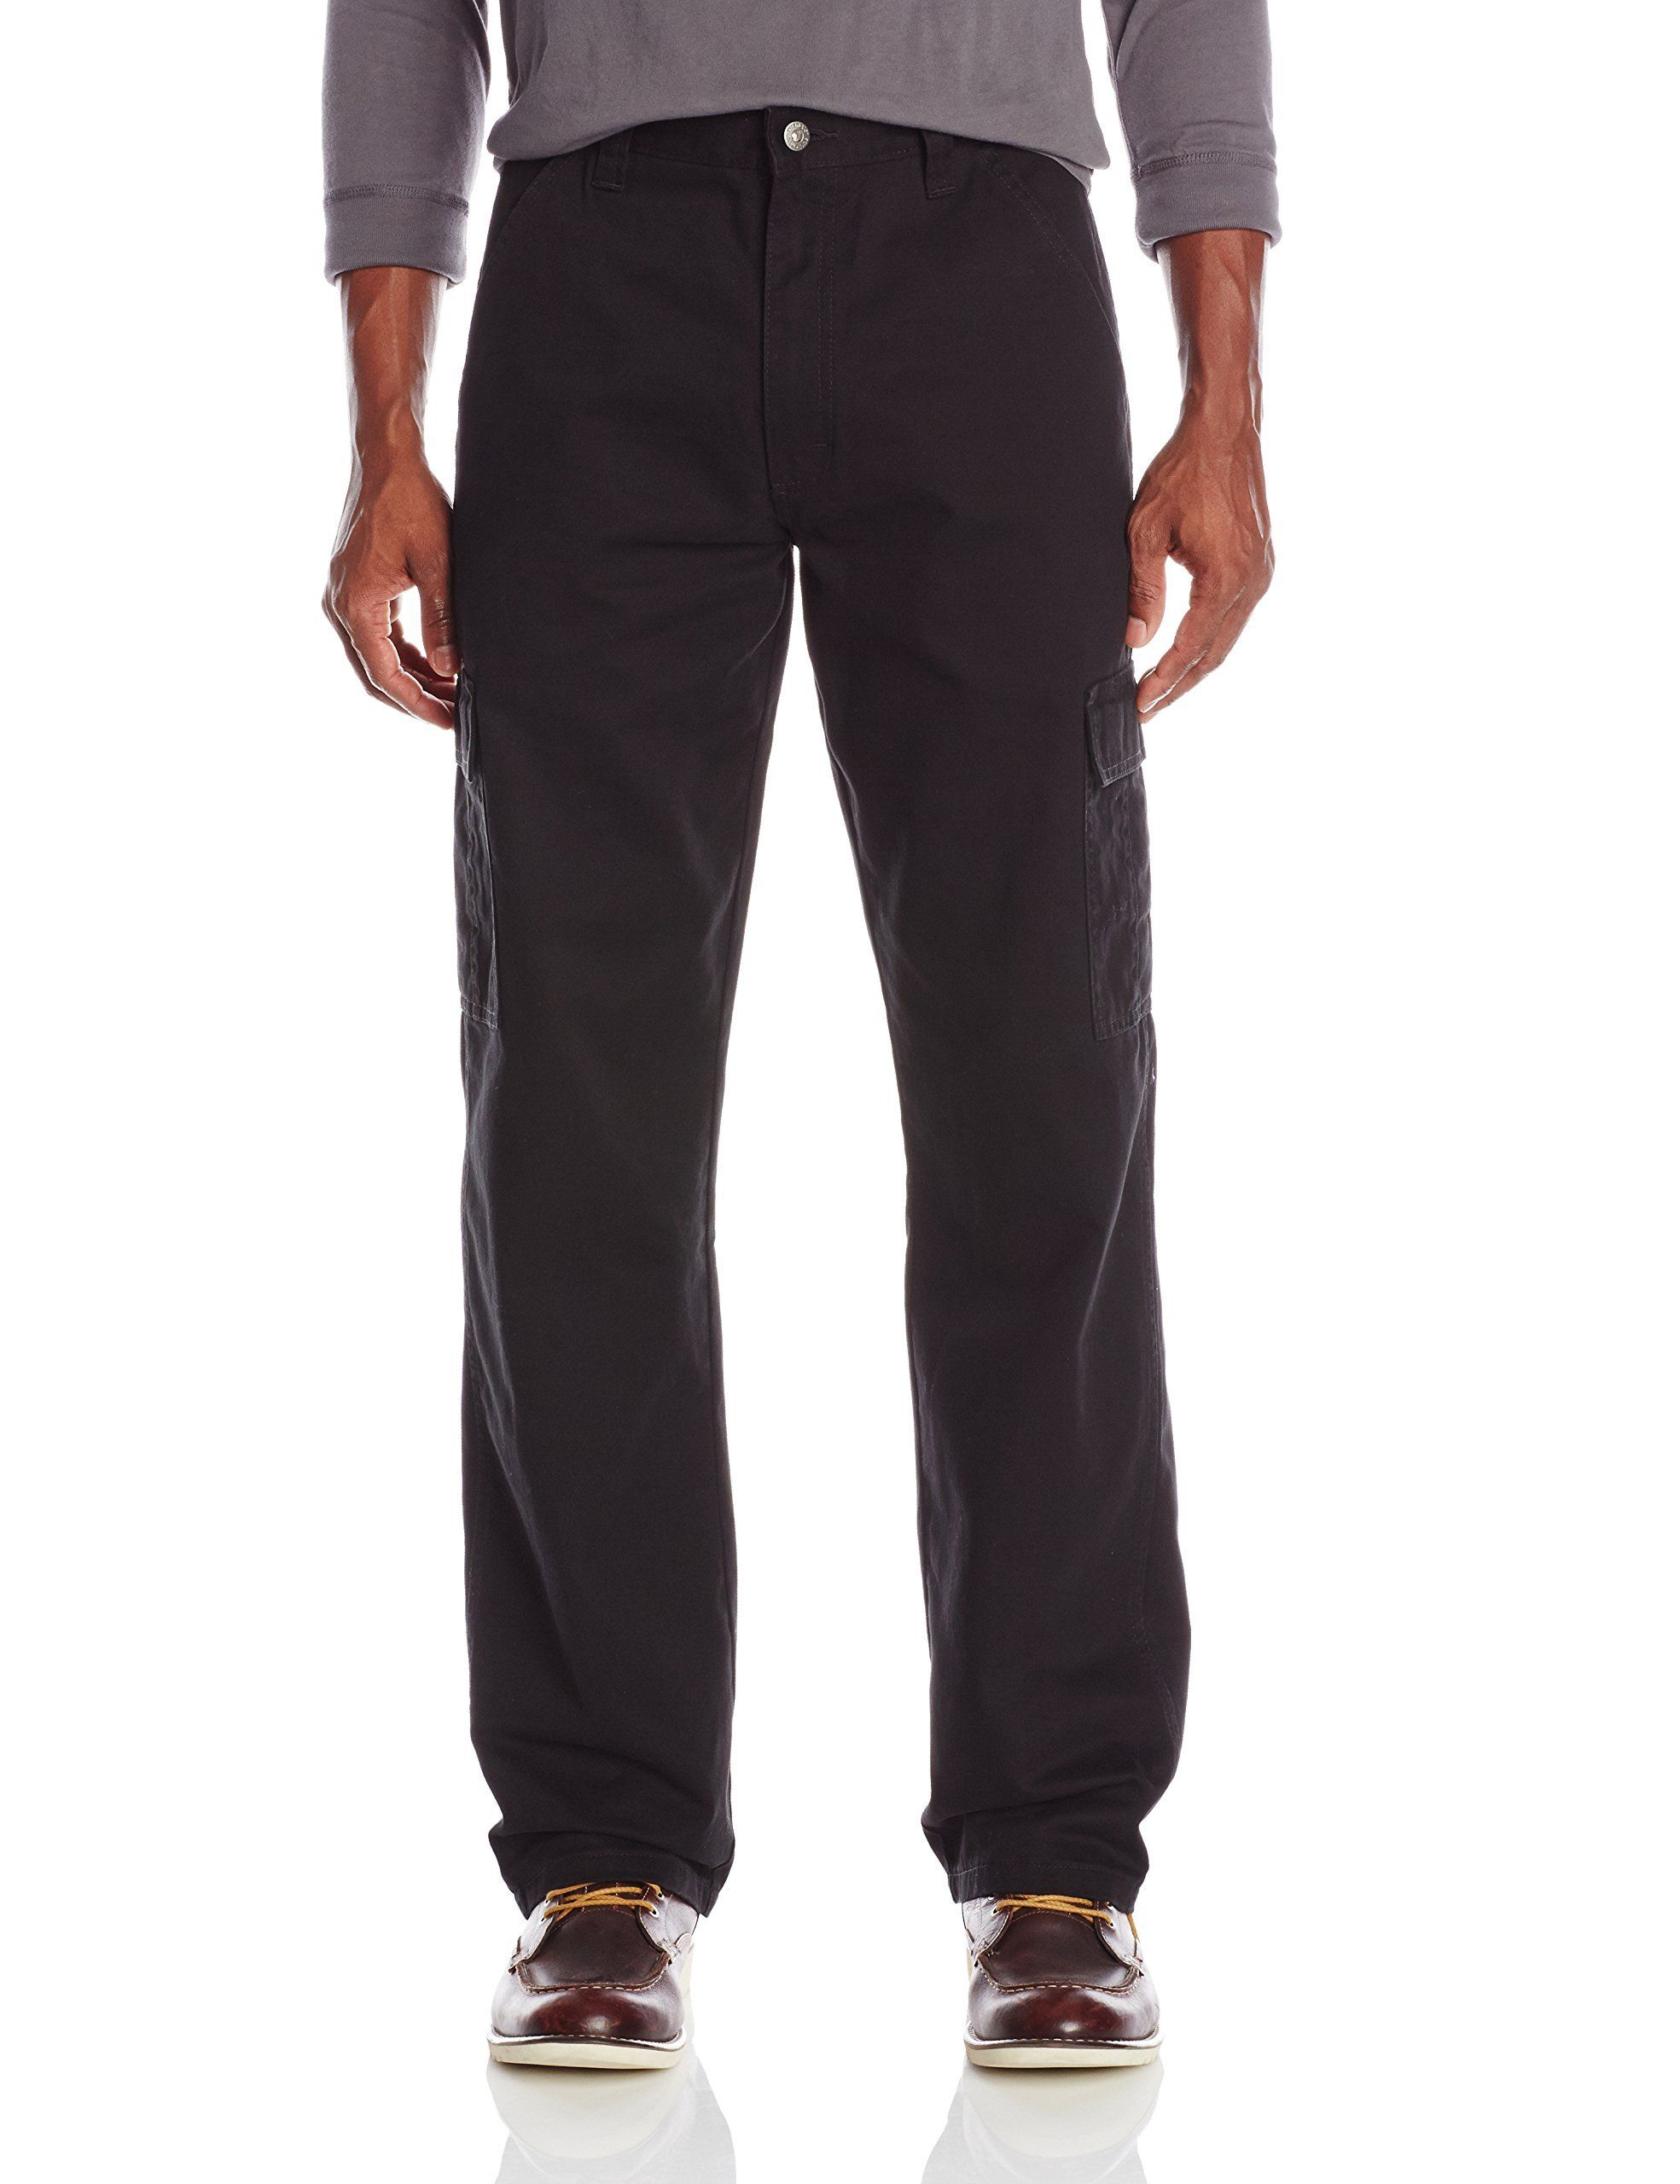 Boughtagain Awesome Goods You Bought It Again Black Cargo Pants Cargo Work Pants Twill Pants